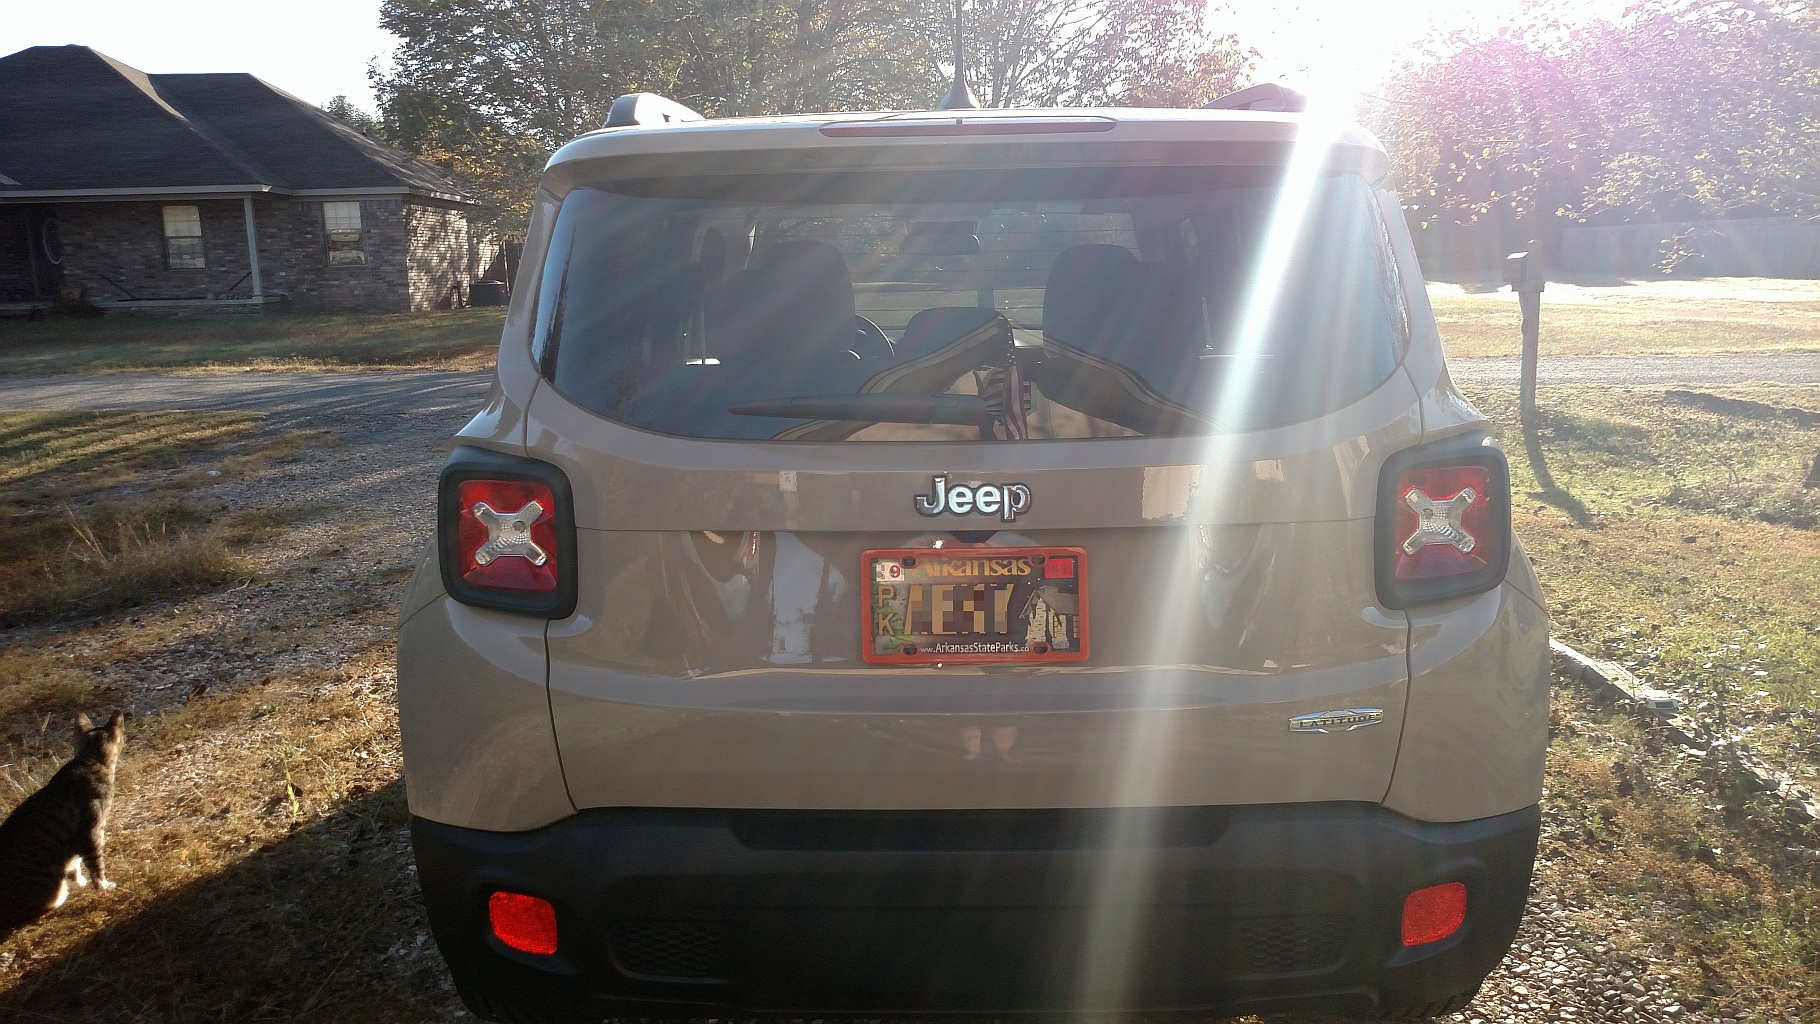 How are you mounting rear license plate? - Jeep Renegade Forum